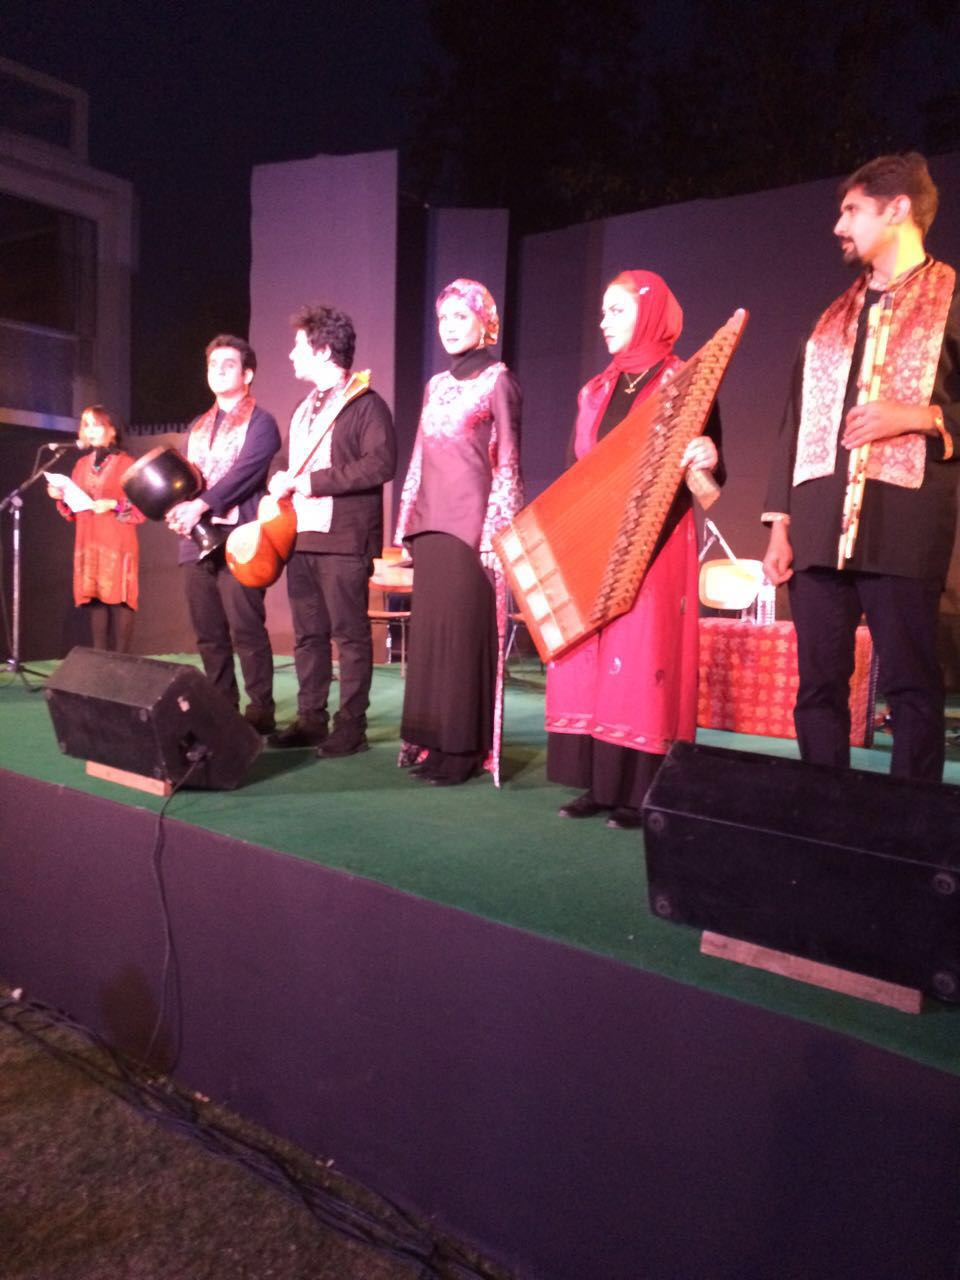 Cultural event at India International Center lawns, April 2, 2016 - Boman Irani and the Basha Ensemble from Tehran